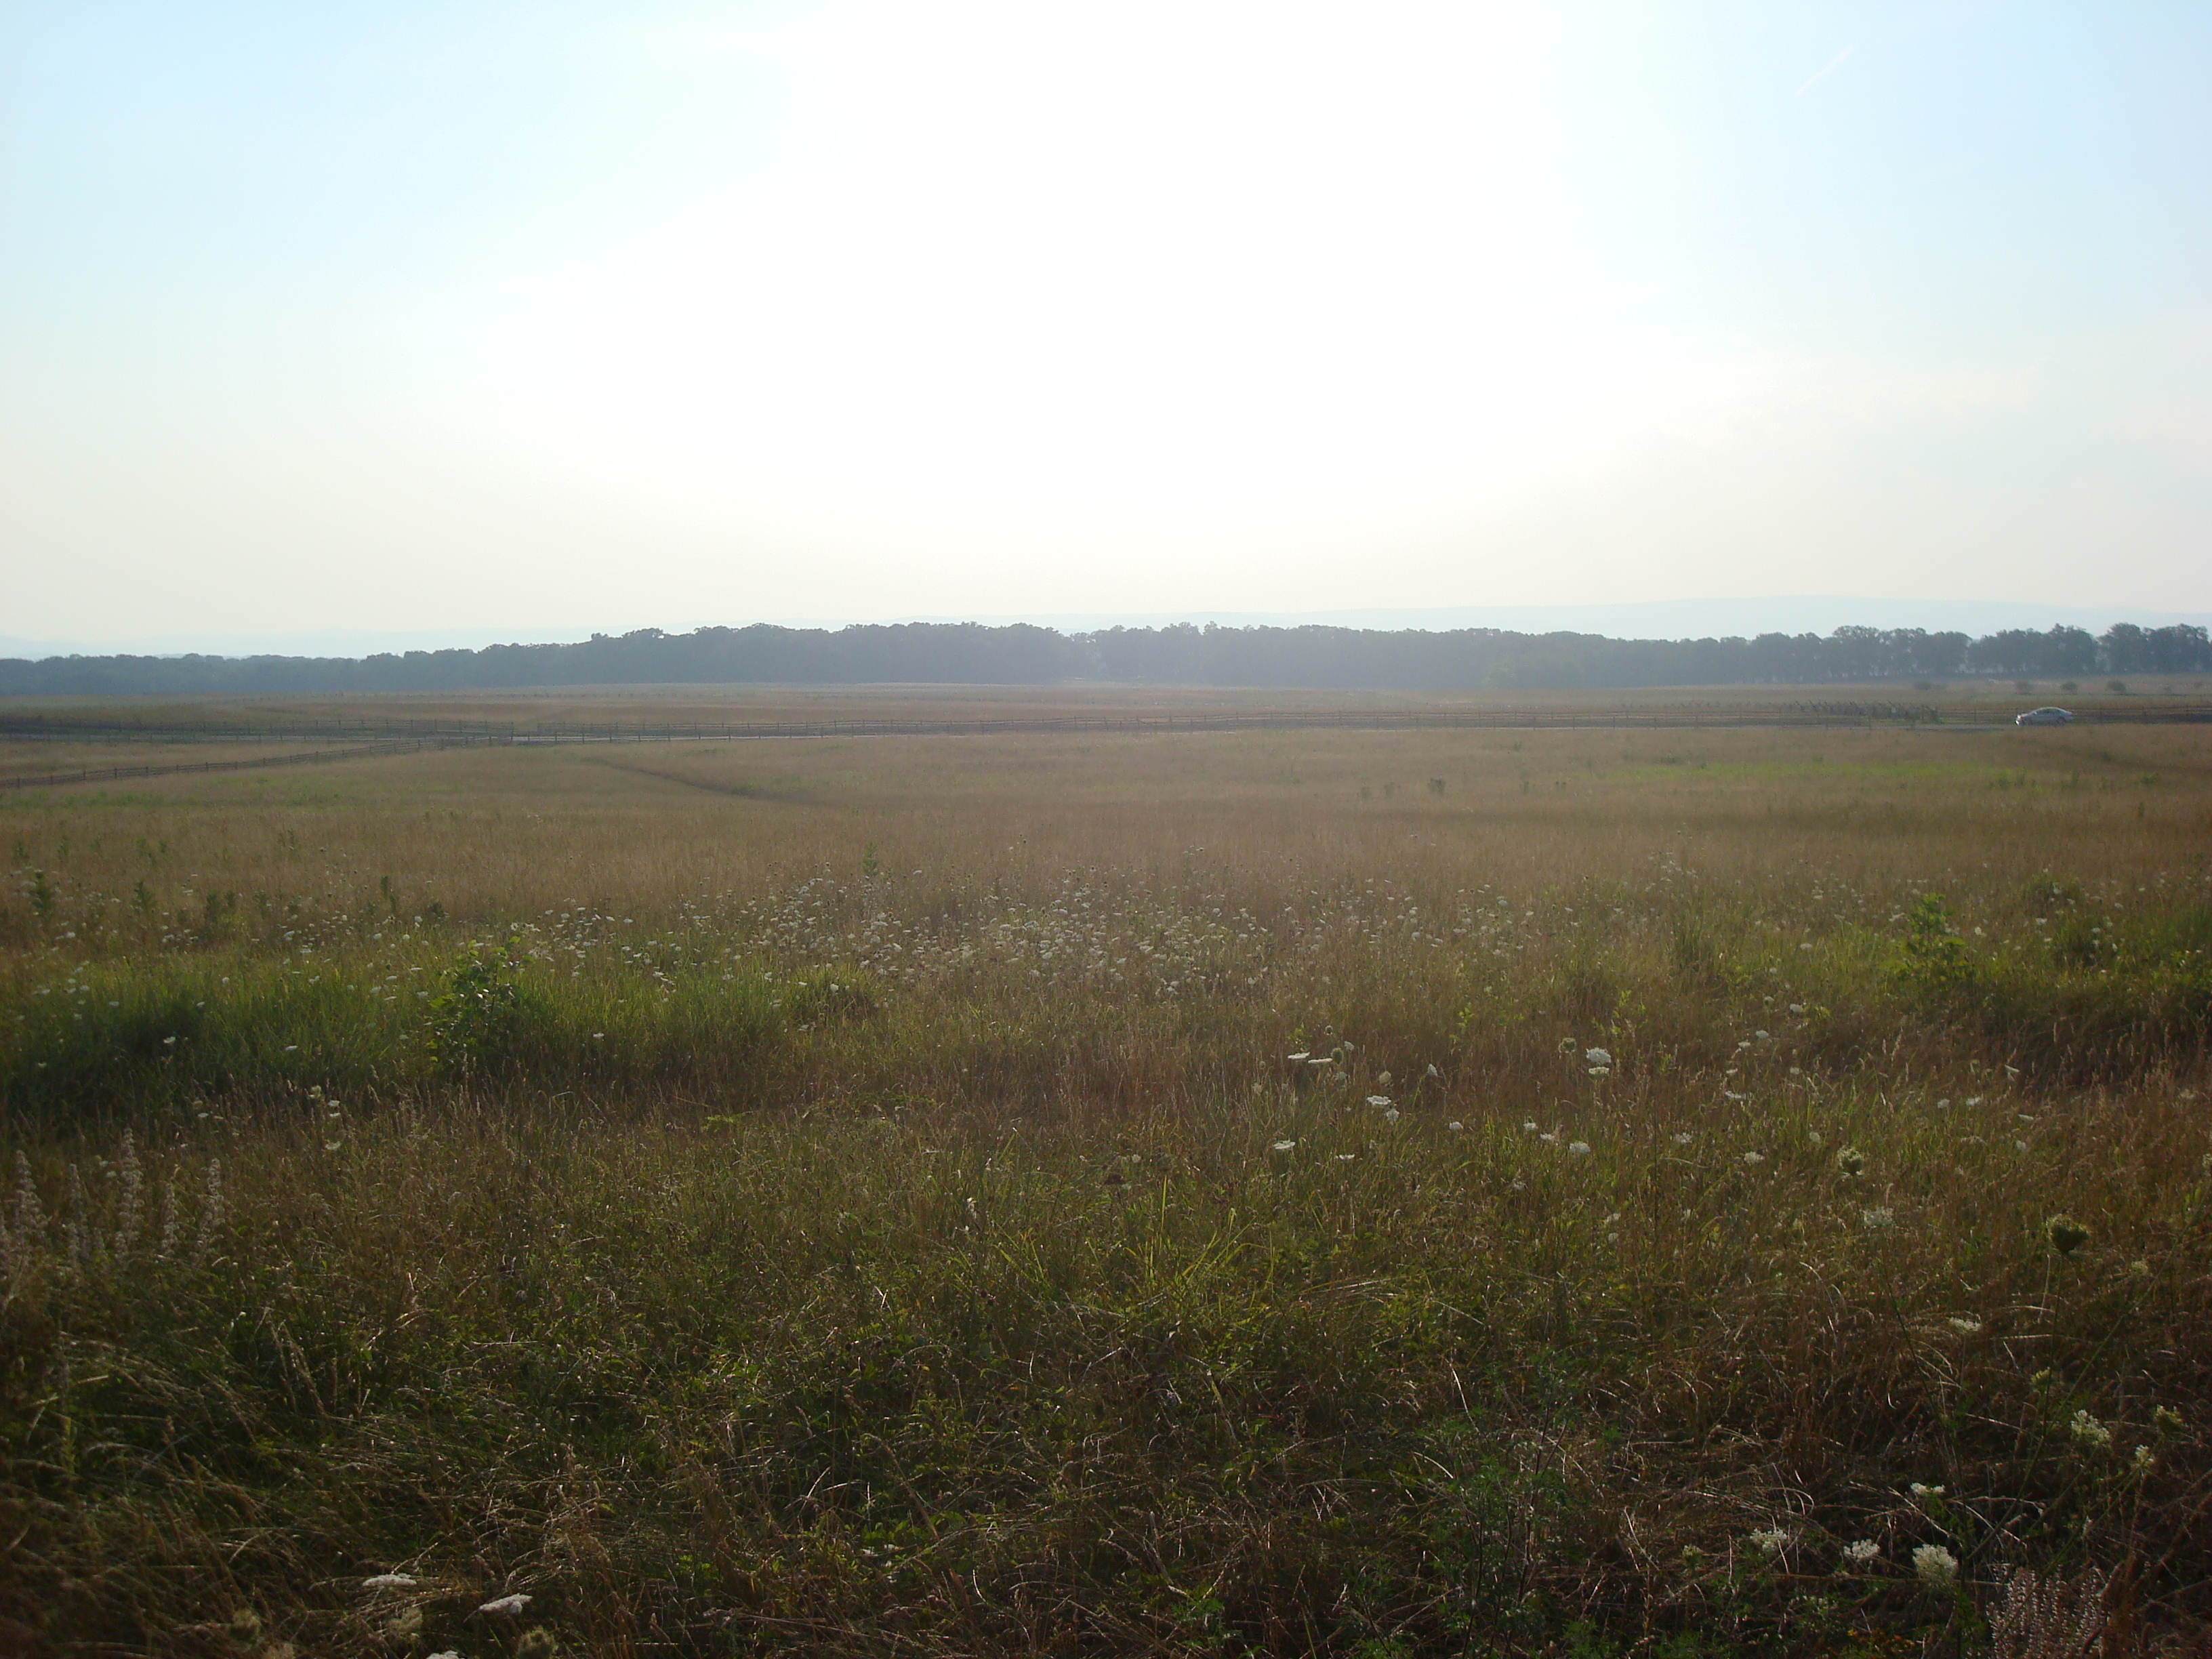 The area of Pickett's Charge, Gettysburg (Wikipedia)